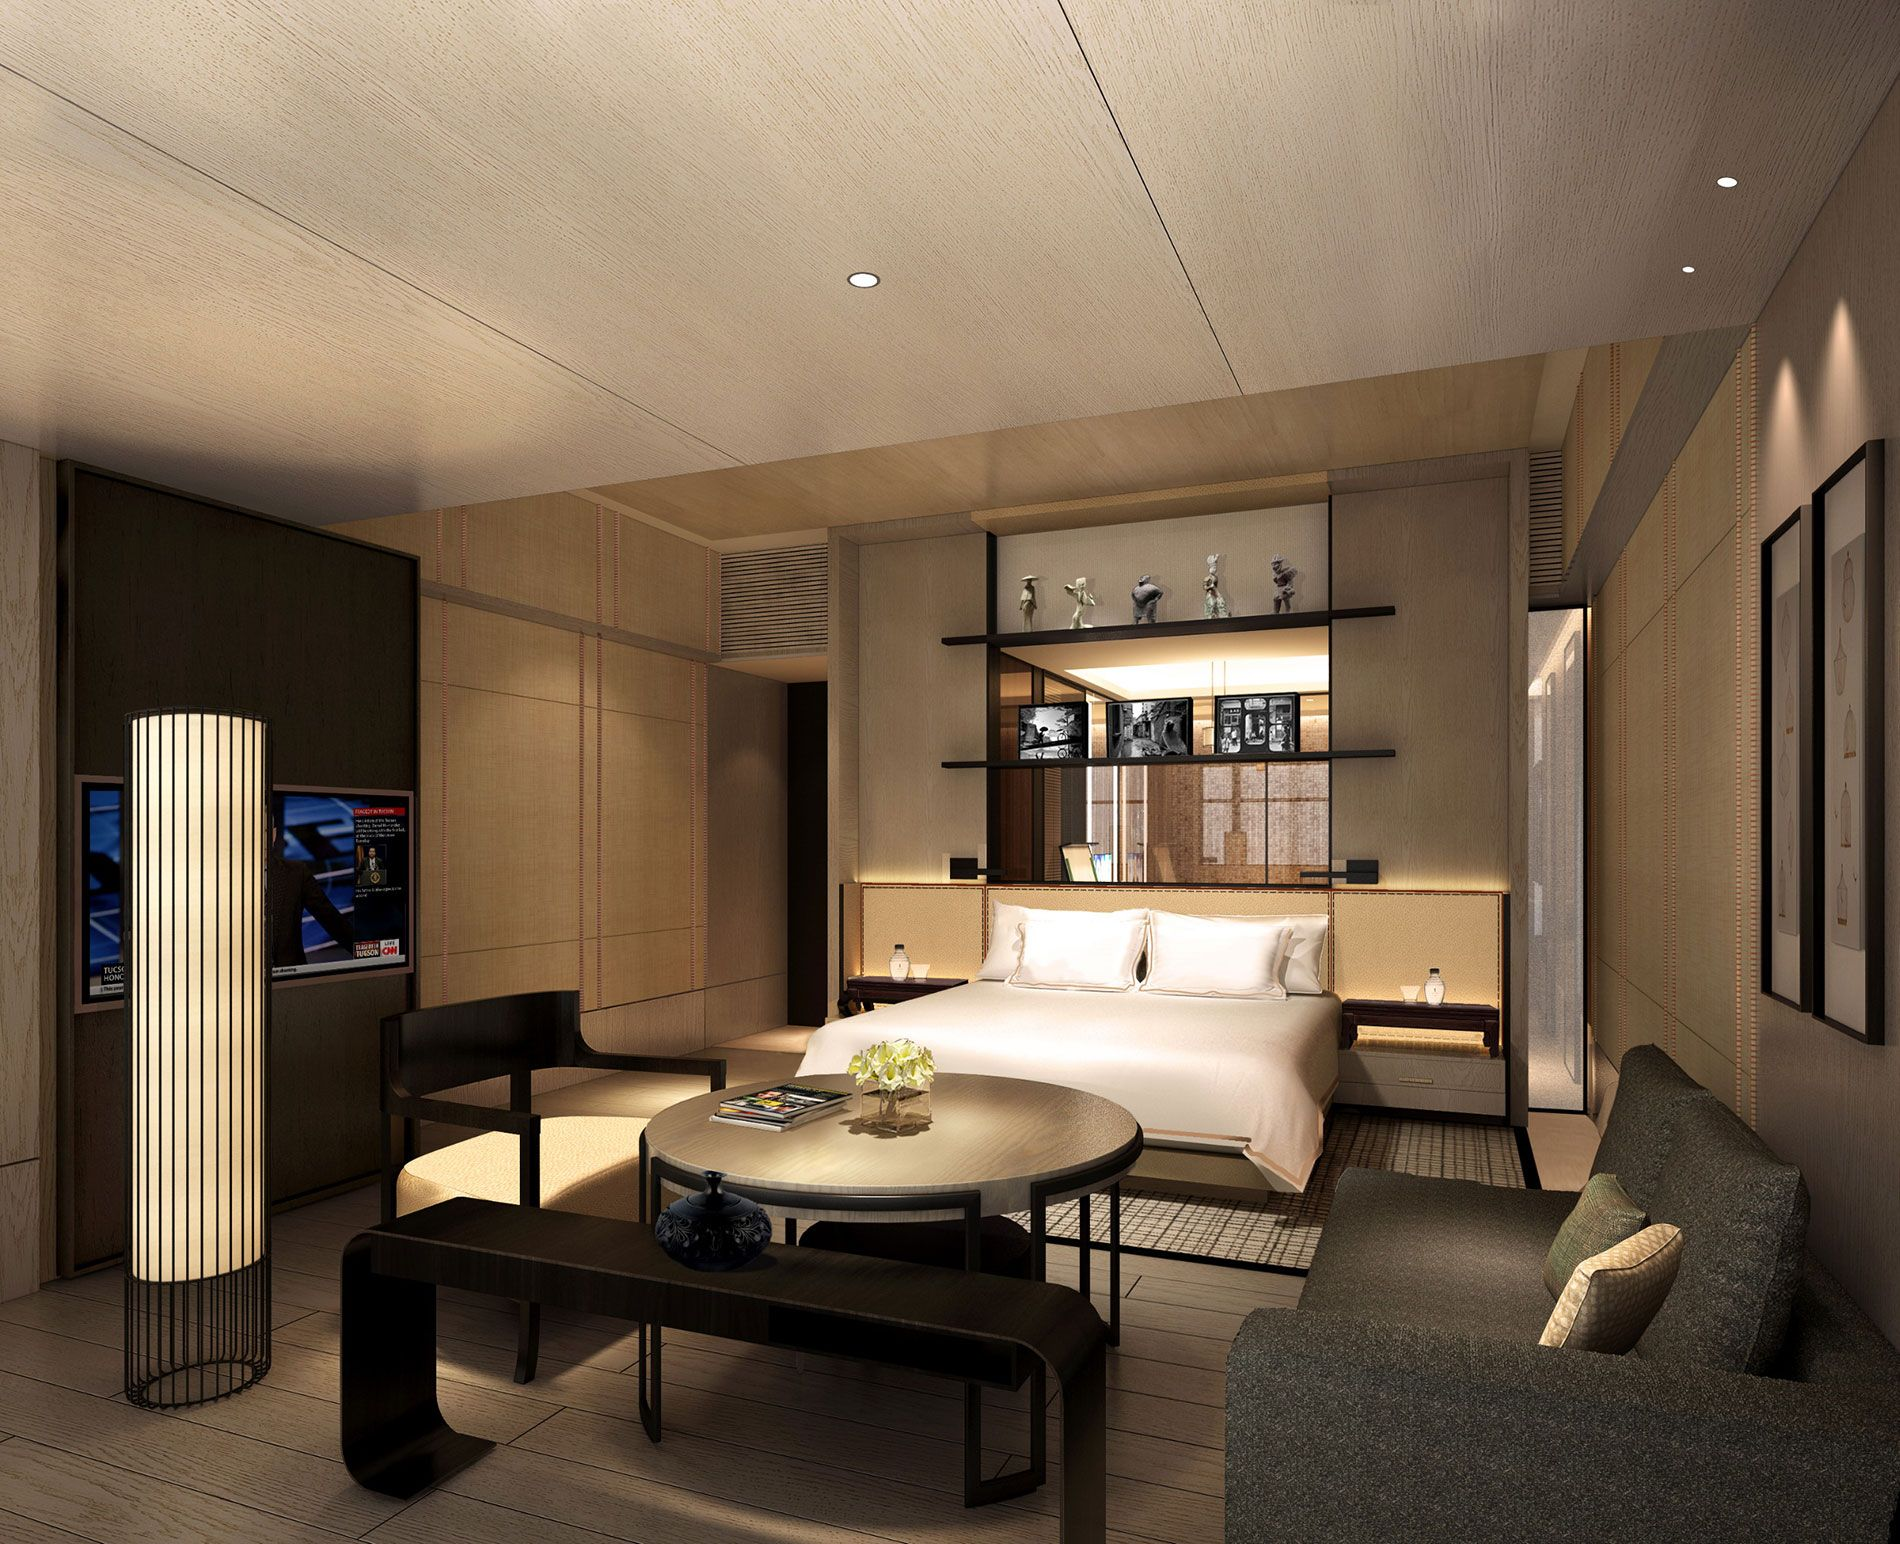 Rosewood Chongqing China To Open 2015 Hotel Room Interior Hotel Room Design Rosewood Hotel